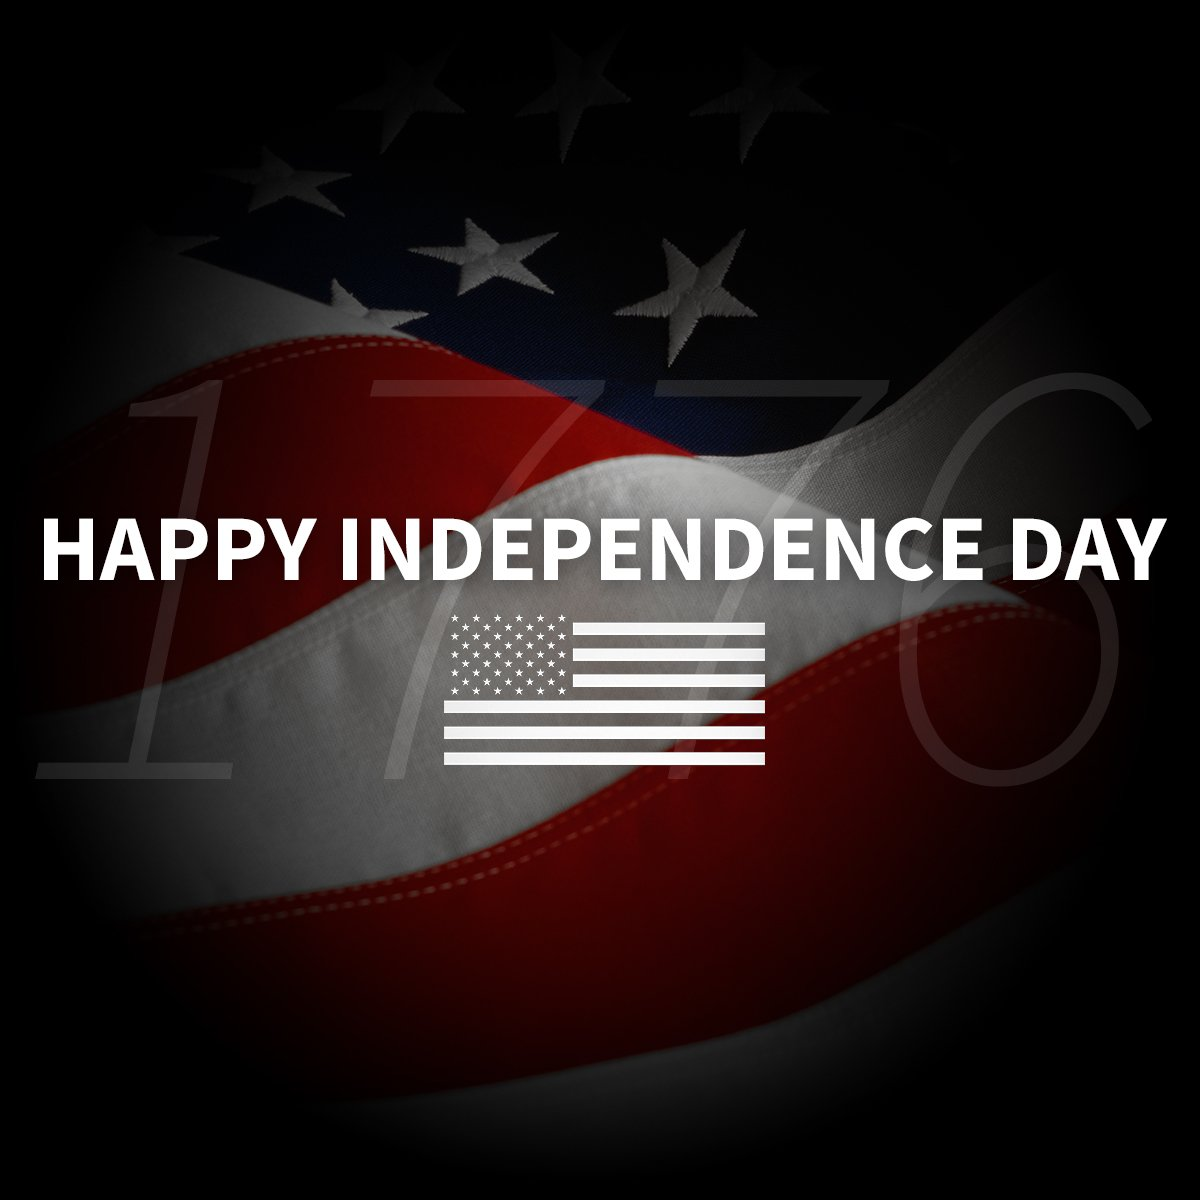 Smith & Wesson wishes you and your family a happy and safe Independence Day! #IndependenceDay https://t.co/B6rSHwDiAG